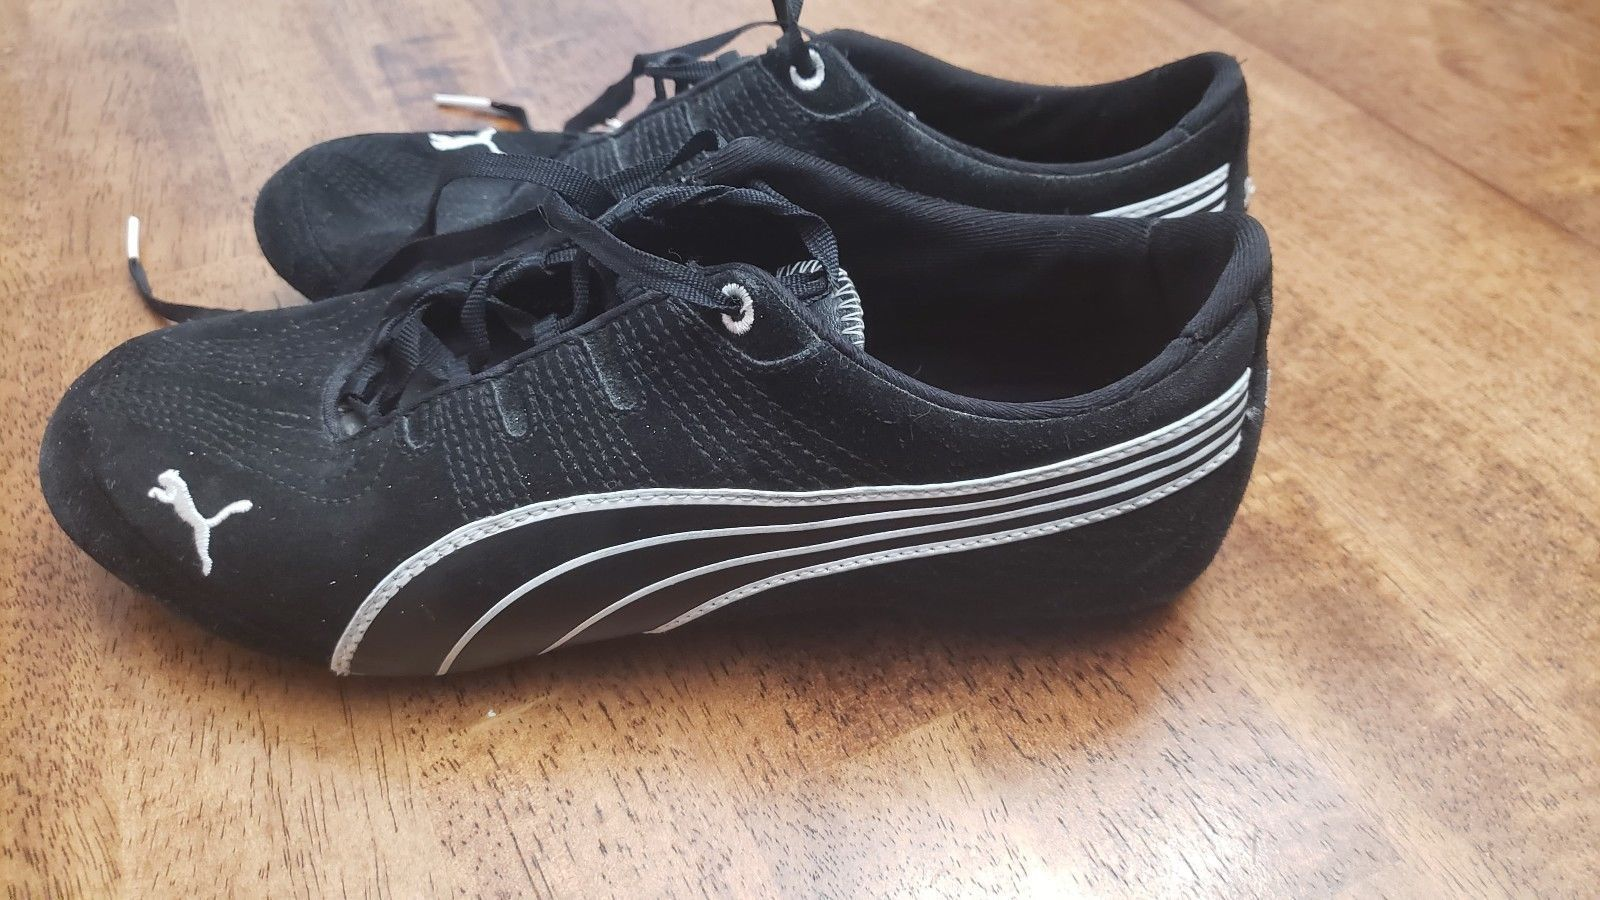 Puma Women's Size 7 Black and White Walking and 50 similar items